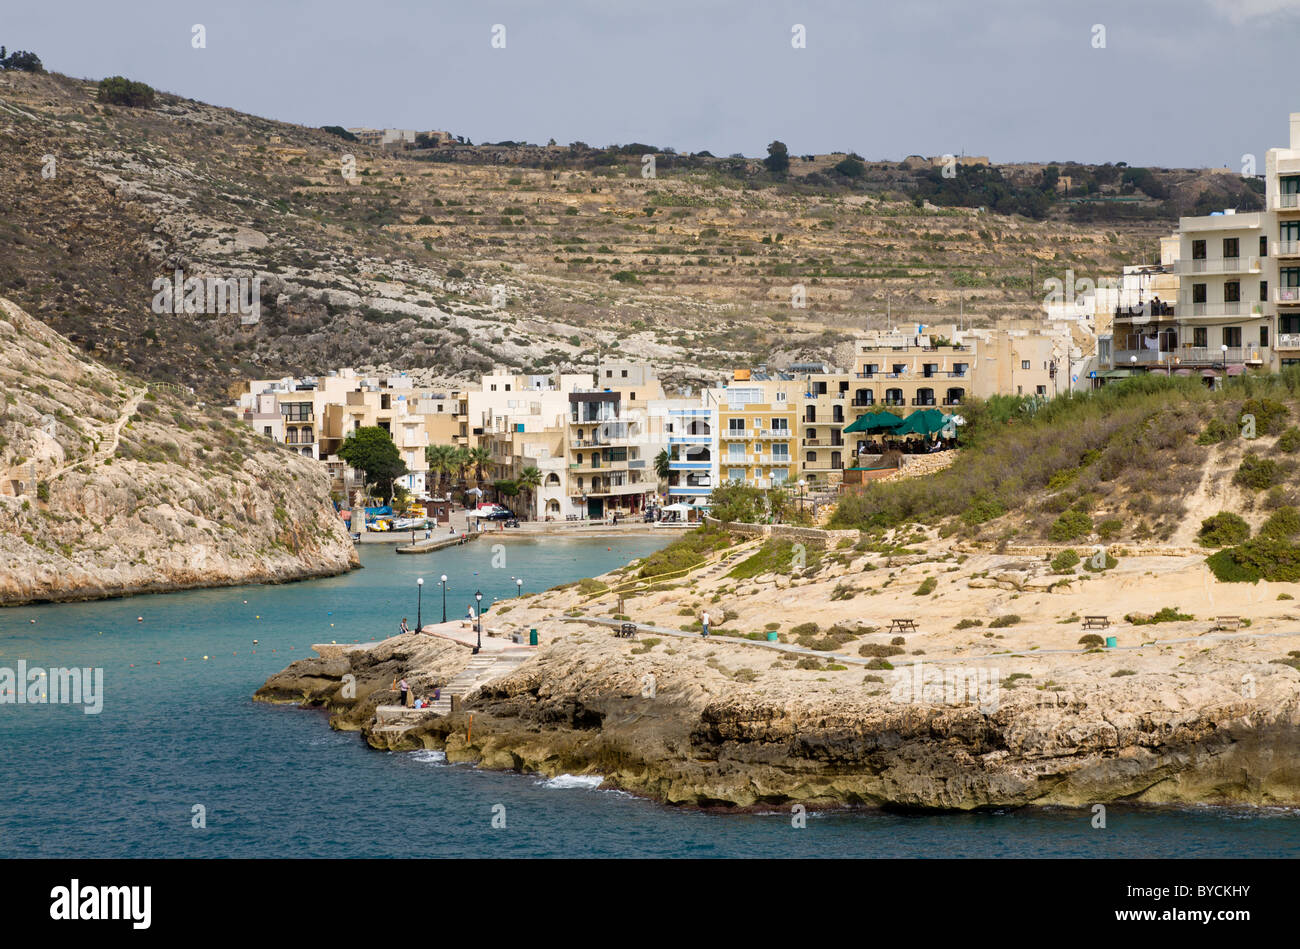 The Gozo island resort of Xlendi. Popular with tourists. Malta, EU. Stock Photo